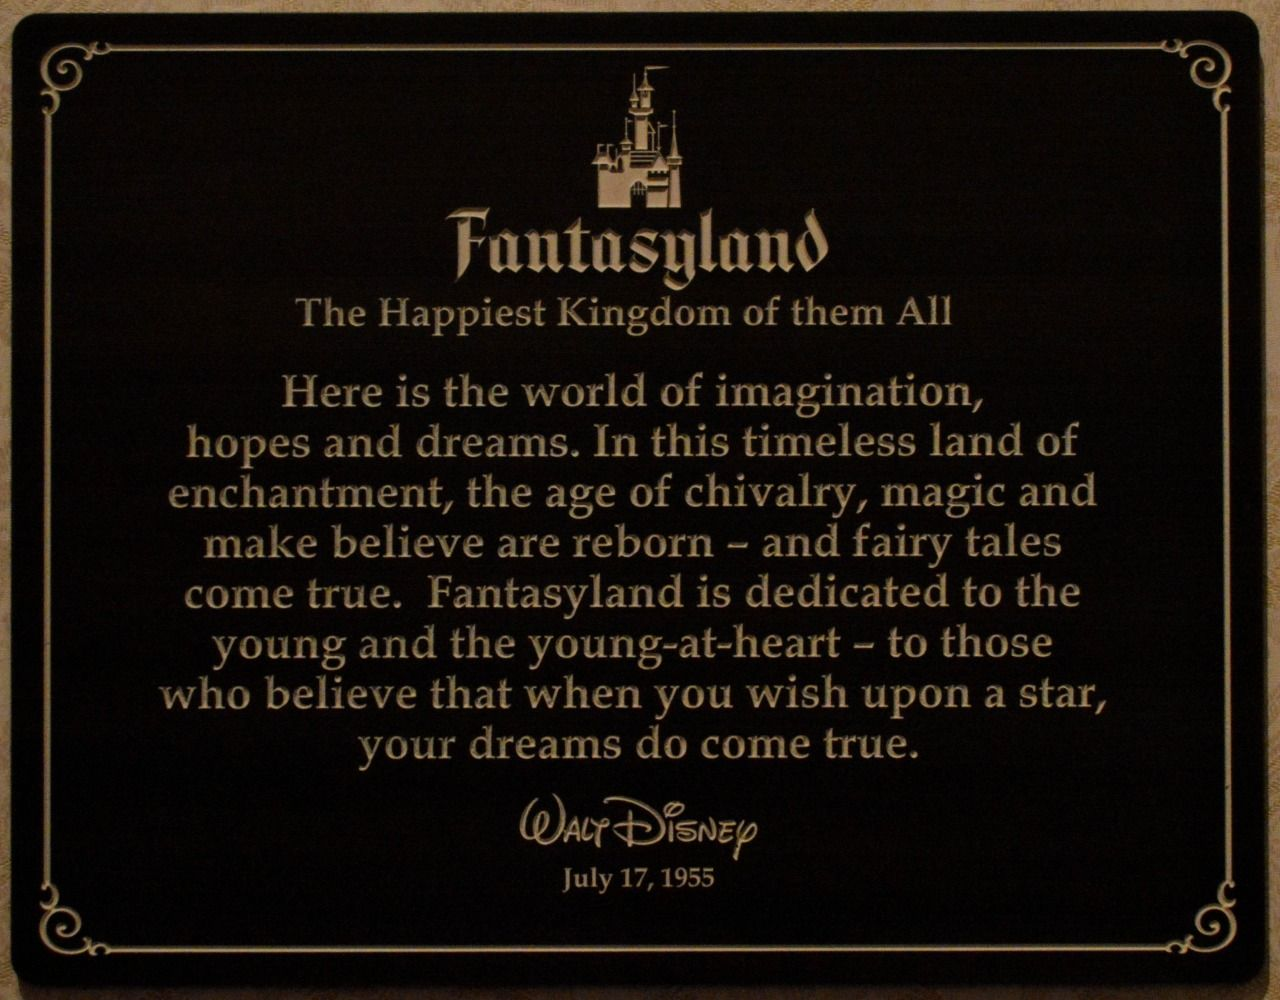 walt disney quote in disneyland